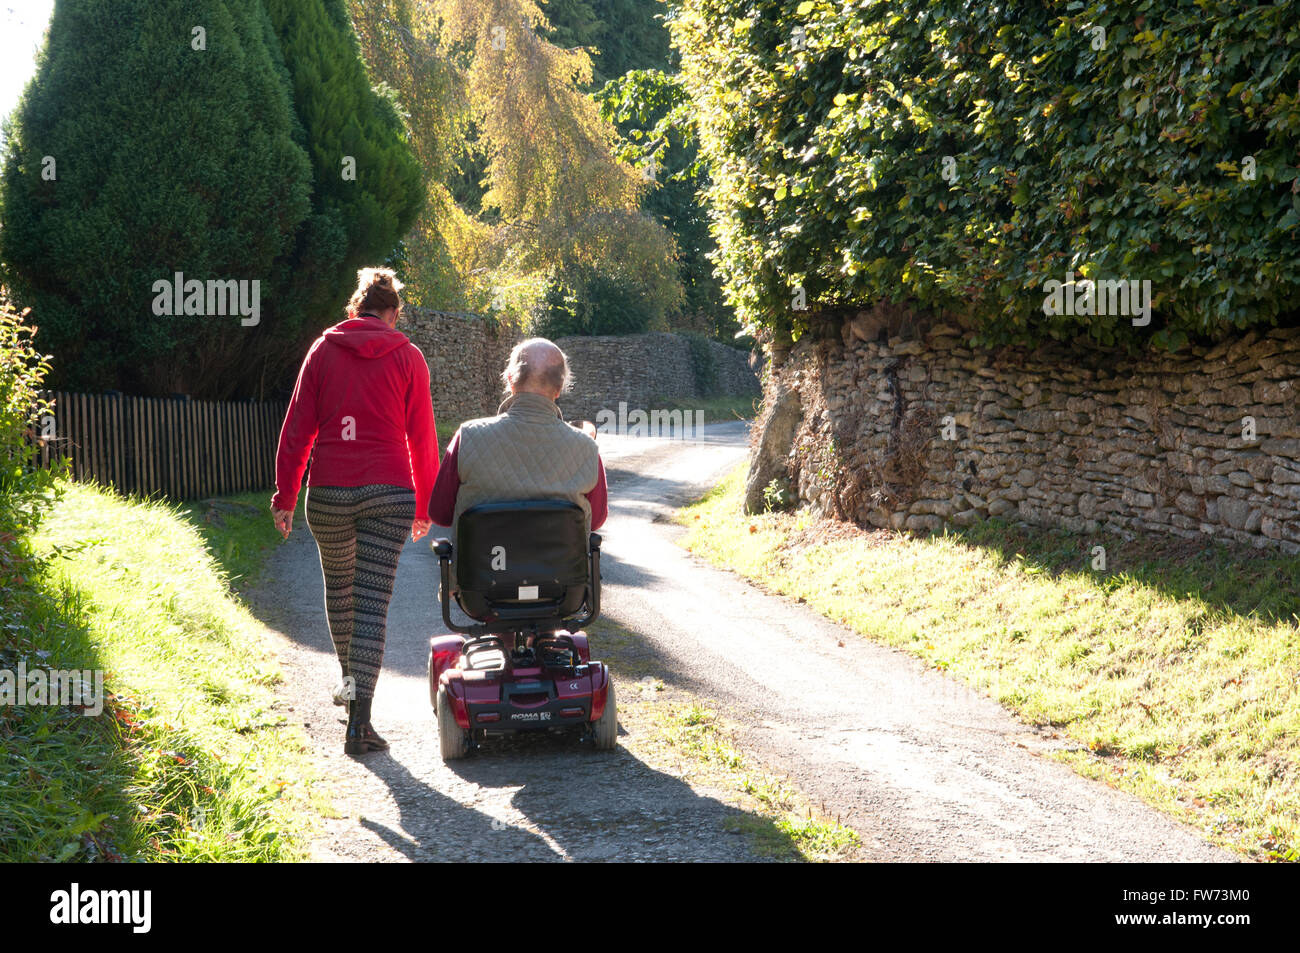 Rear view of an elderly man using a mobility scooter with his carer walking beside him - Stock Image